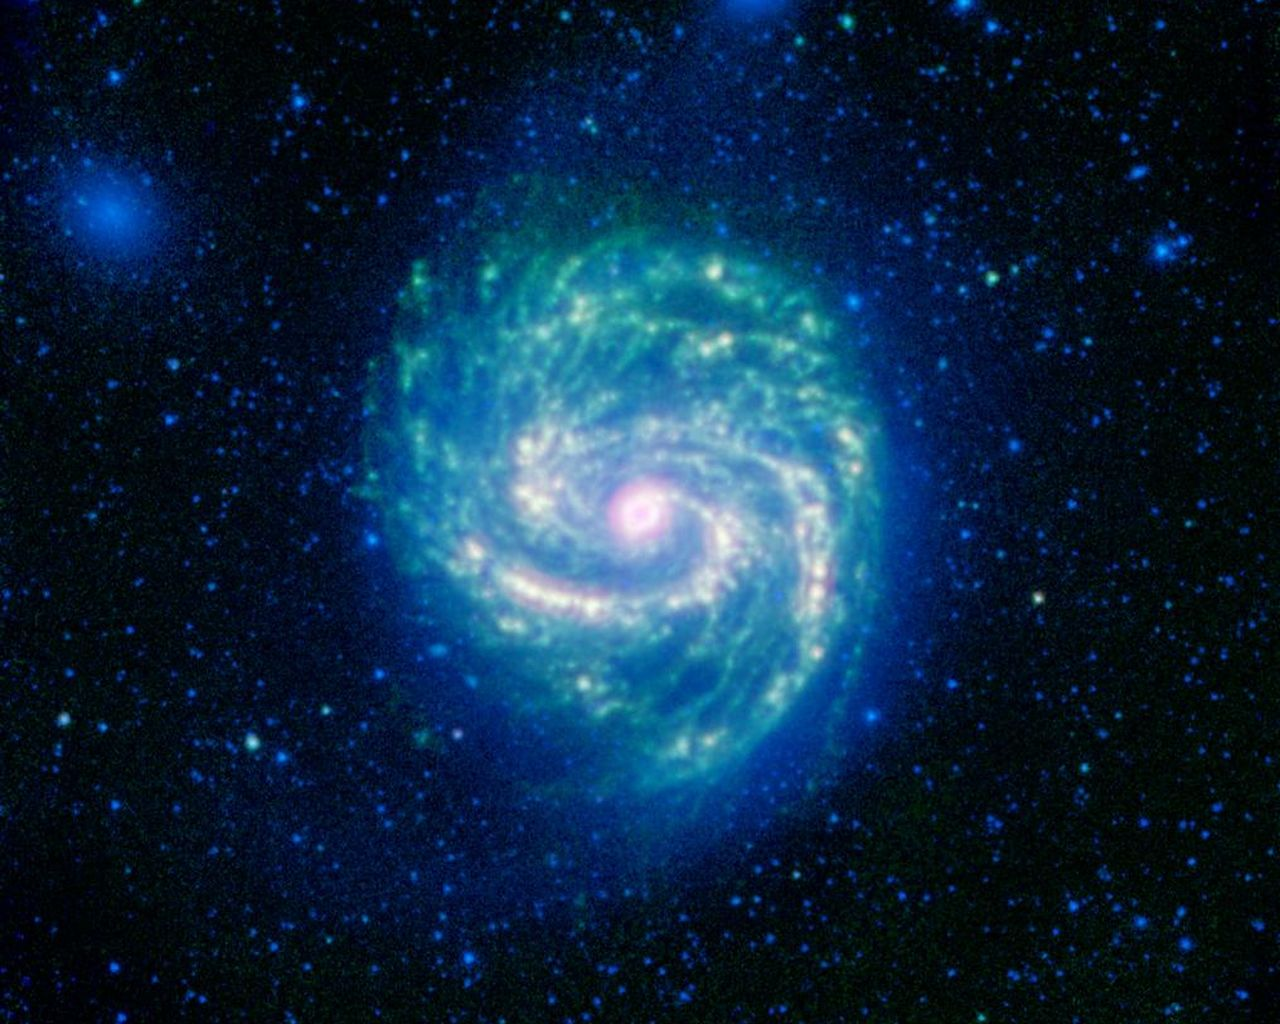 Space Images | Hot and Cold in the M100 Galaxy